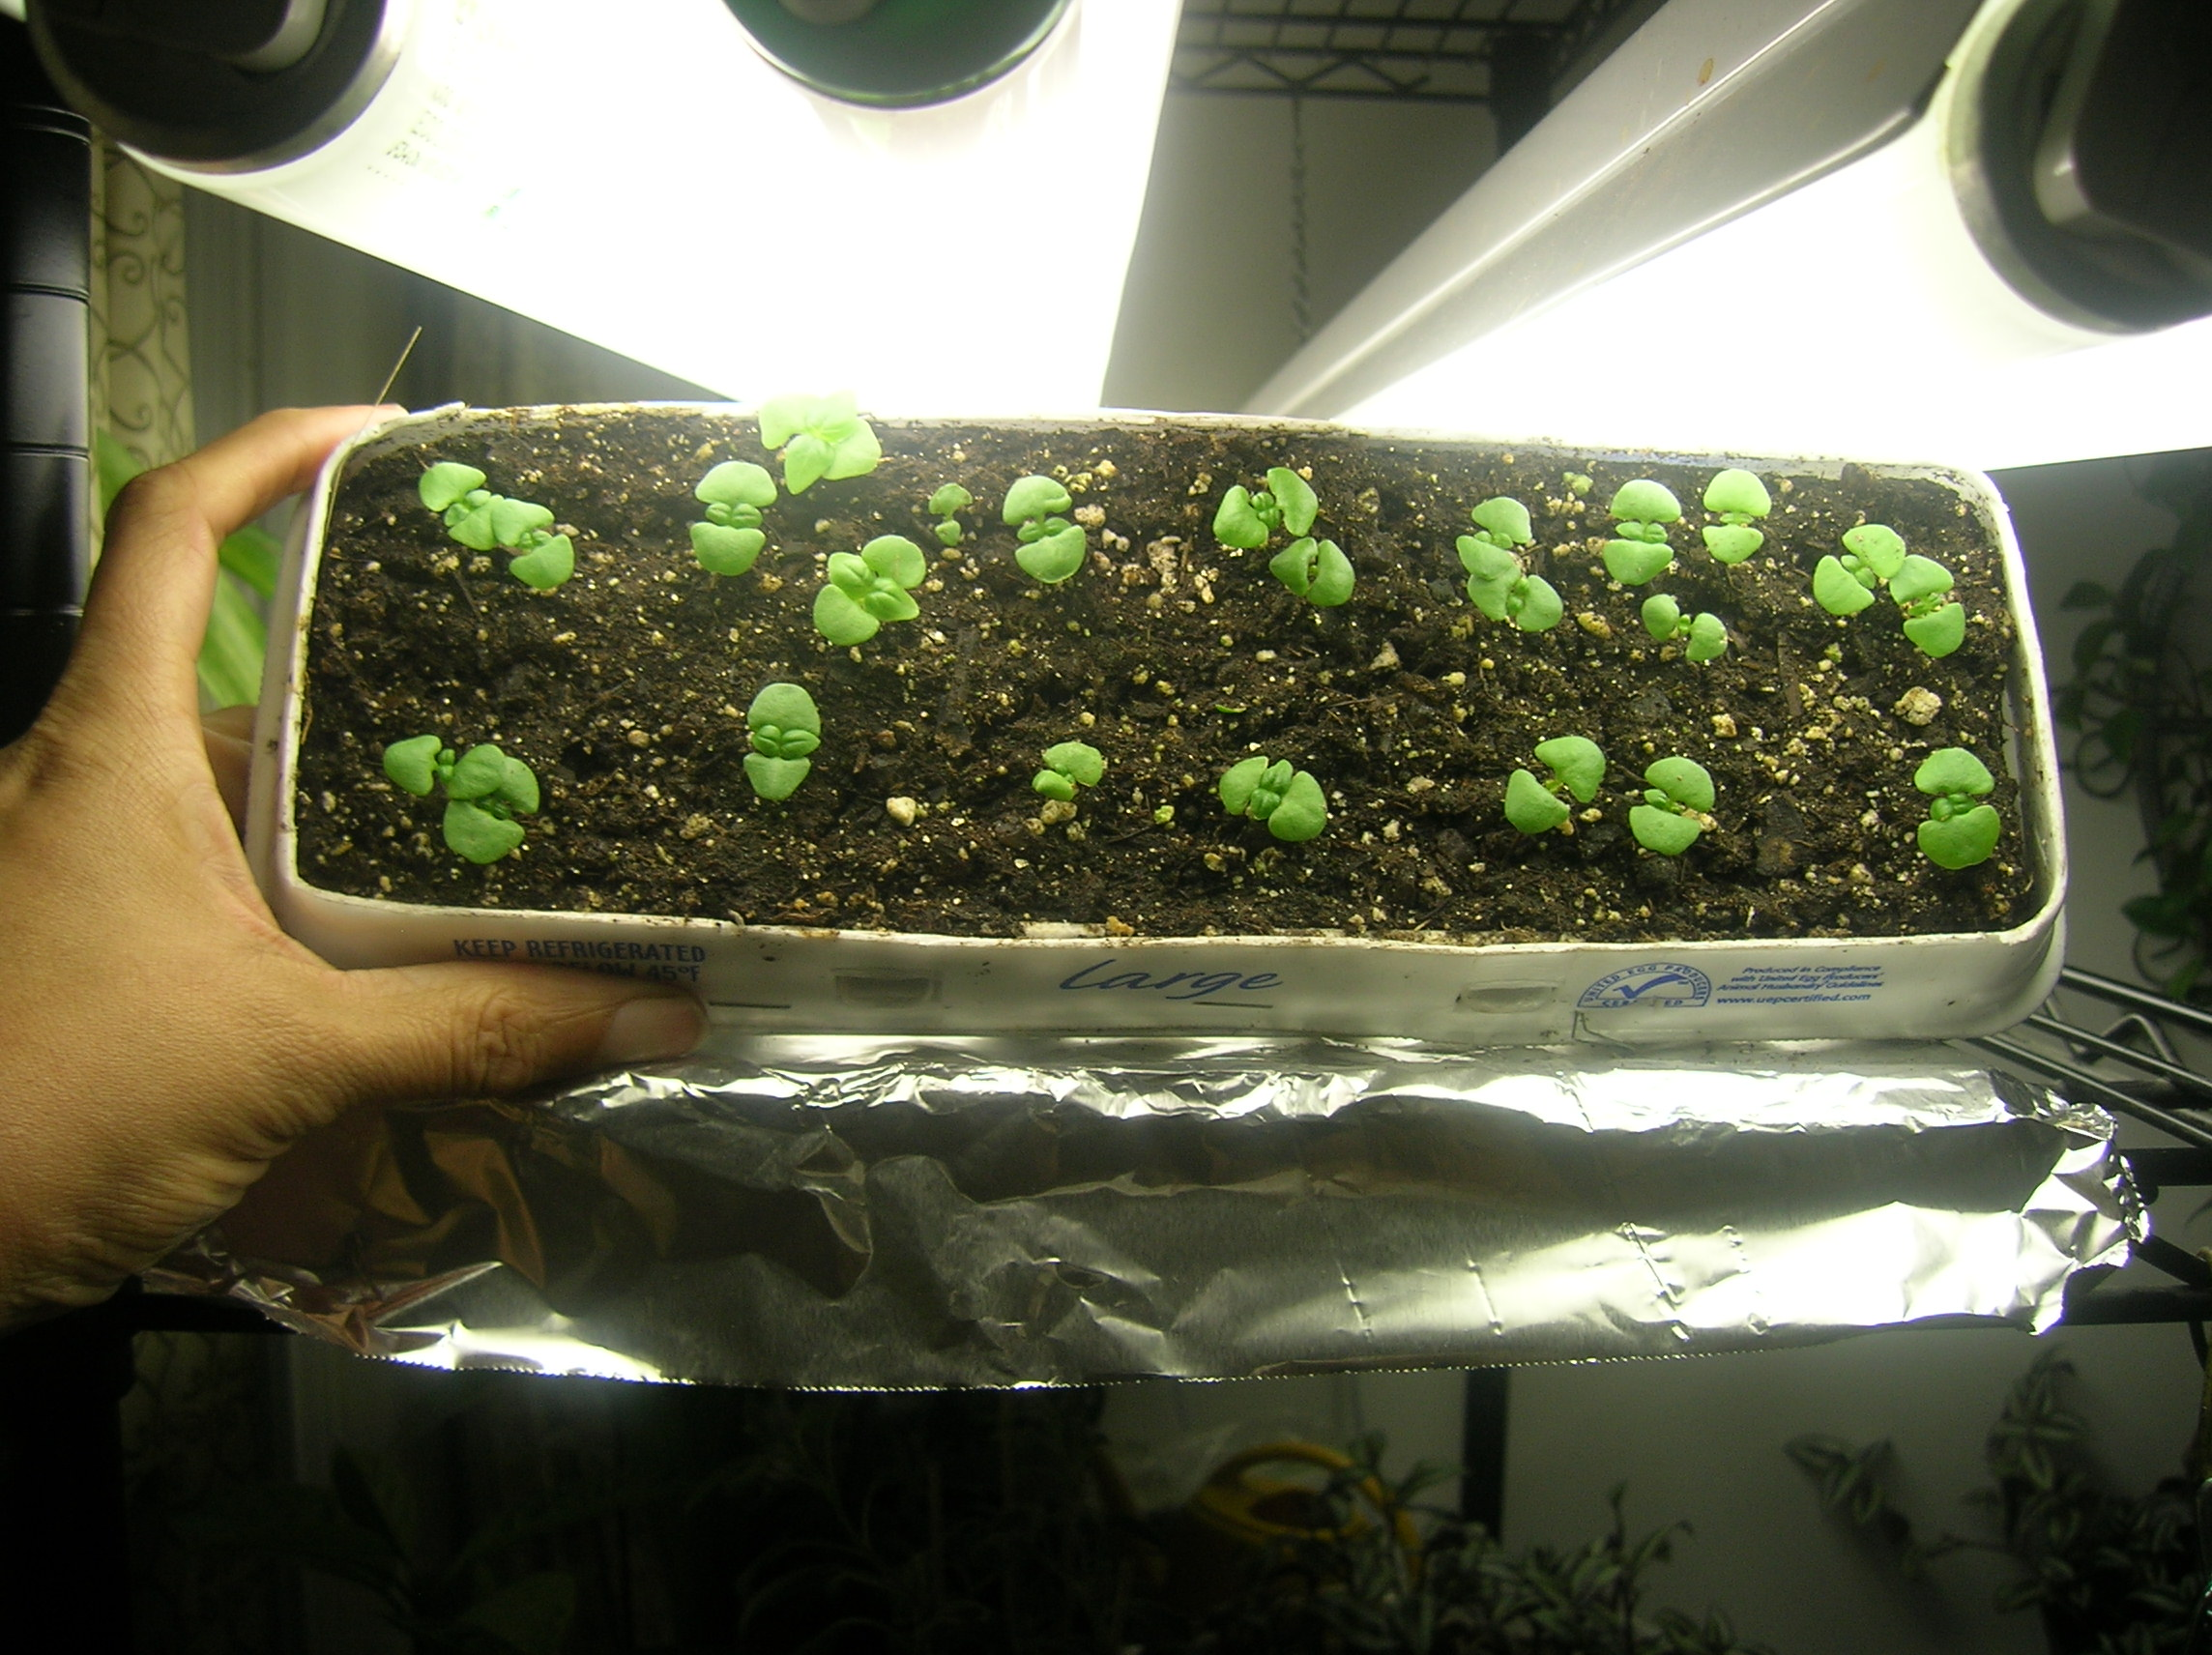 How to grow petunia from seeds - So Many Seedlings In Fact That You Decide To Share The Wealth You Have This Master Gardener Friend Who Is Starting Seeds In A Greenhouse And You Think